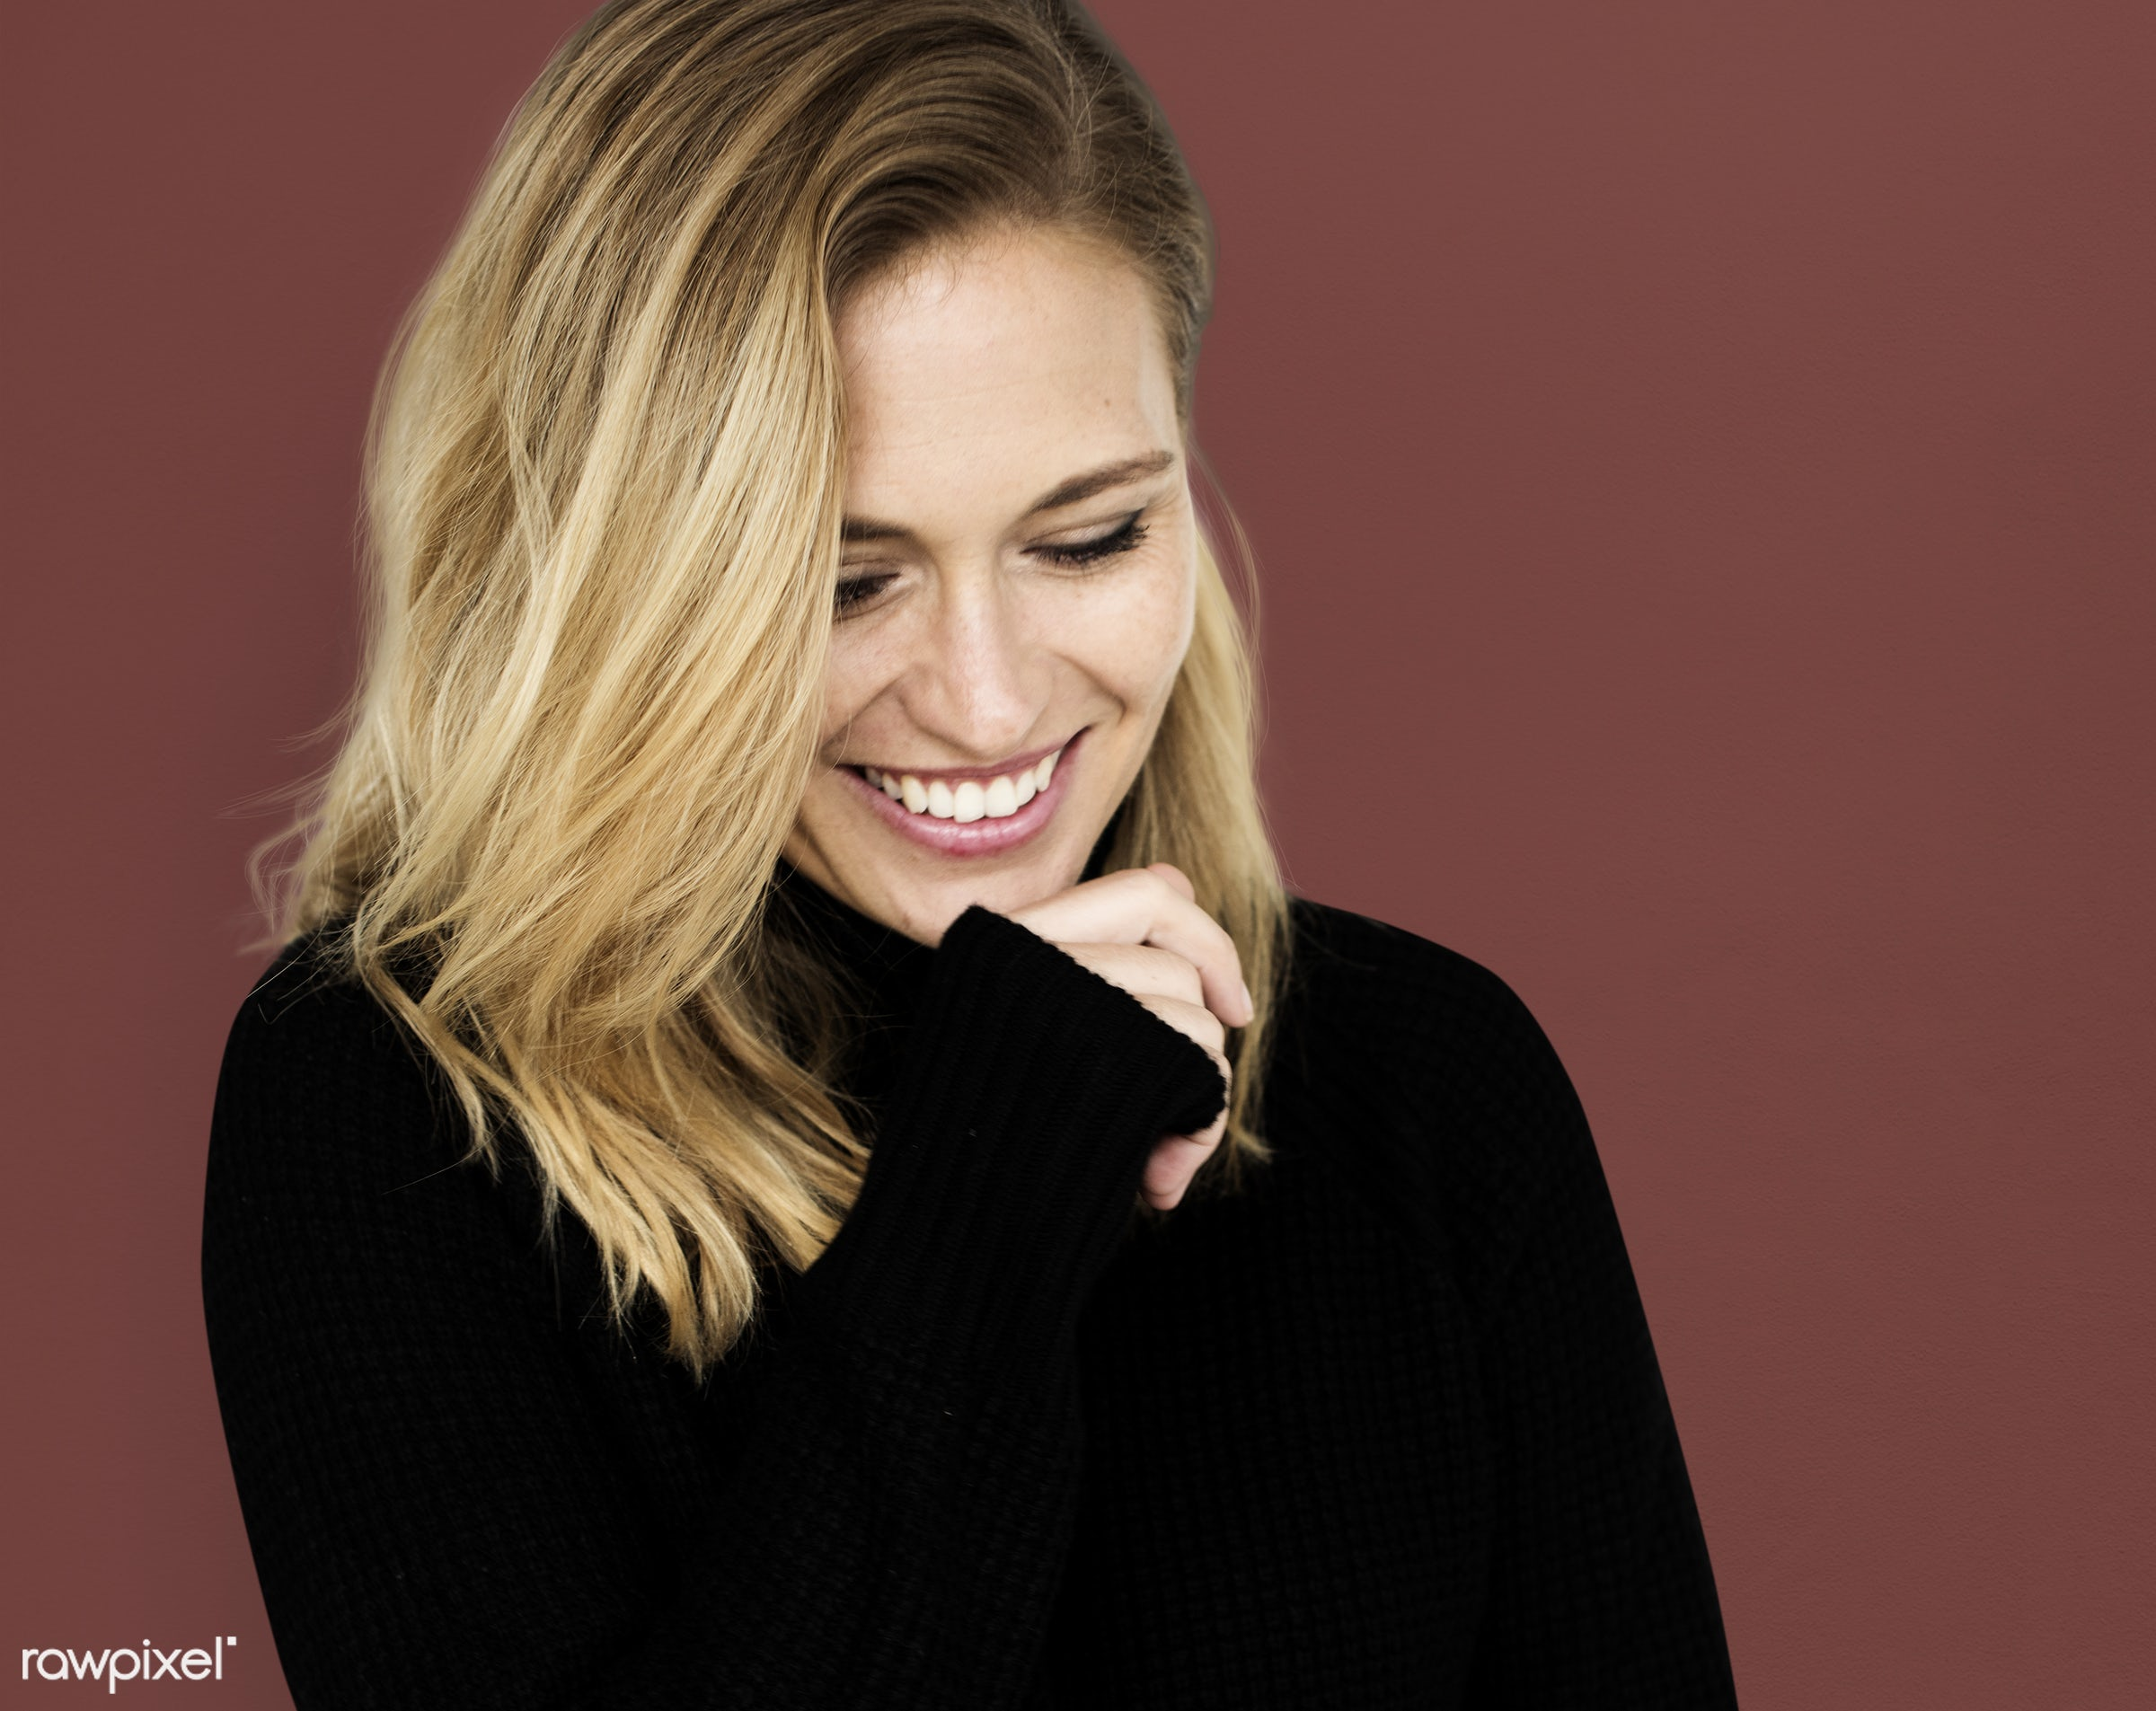 studio, expression, earth tone, pastel, person, people, caucasian, woman, lifestyle, smile, positive, cheerful, isolated,...